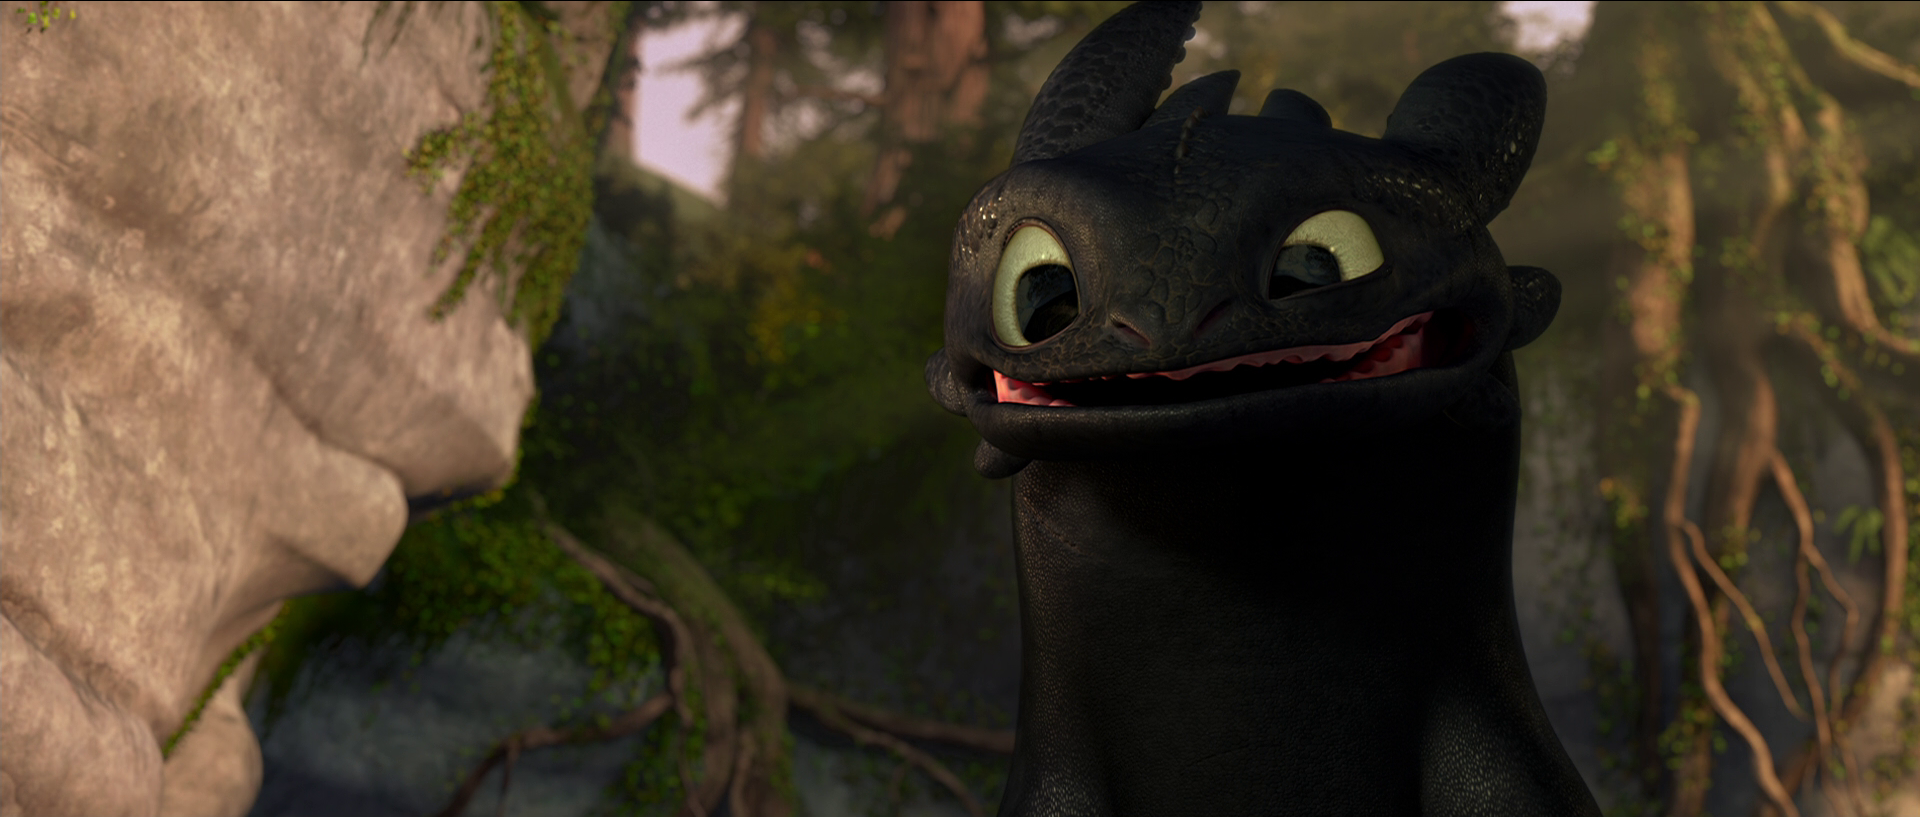 toothless photos toothless httyd universe wiki fandom powered by wikia 3008